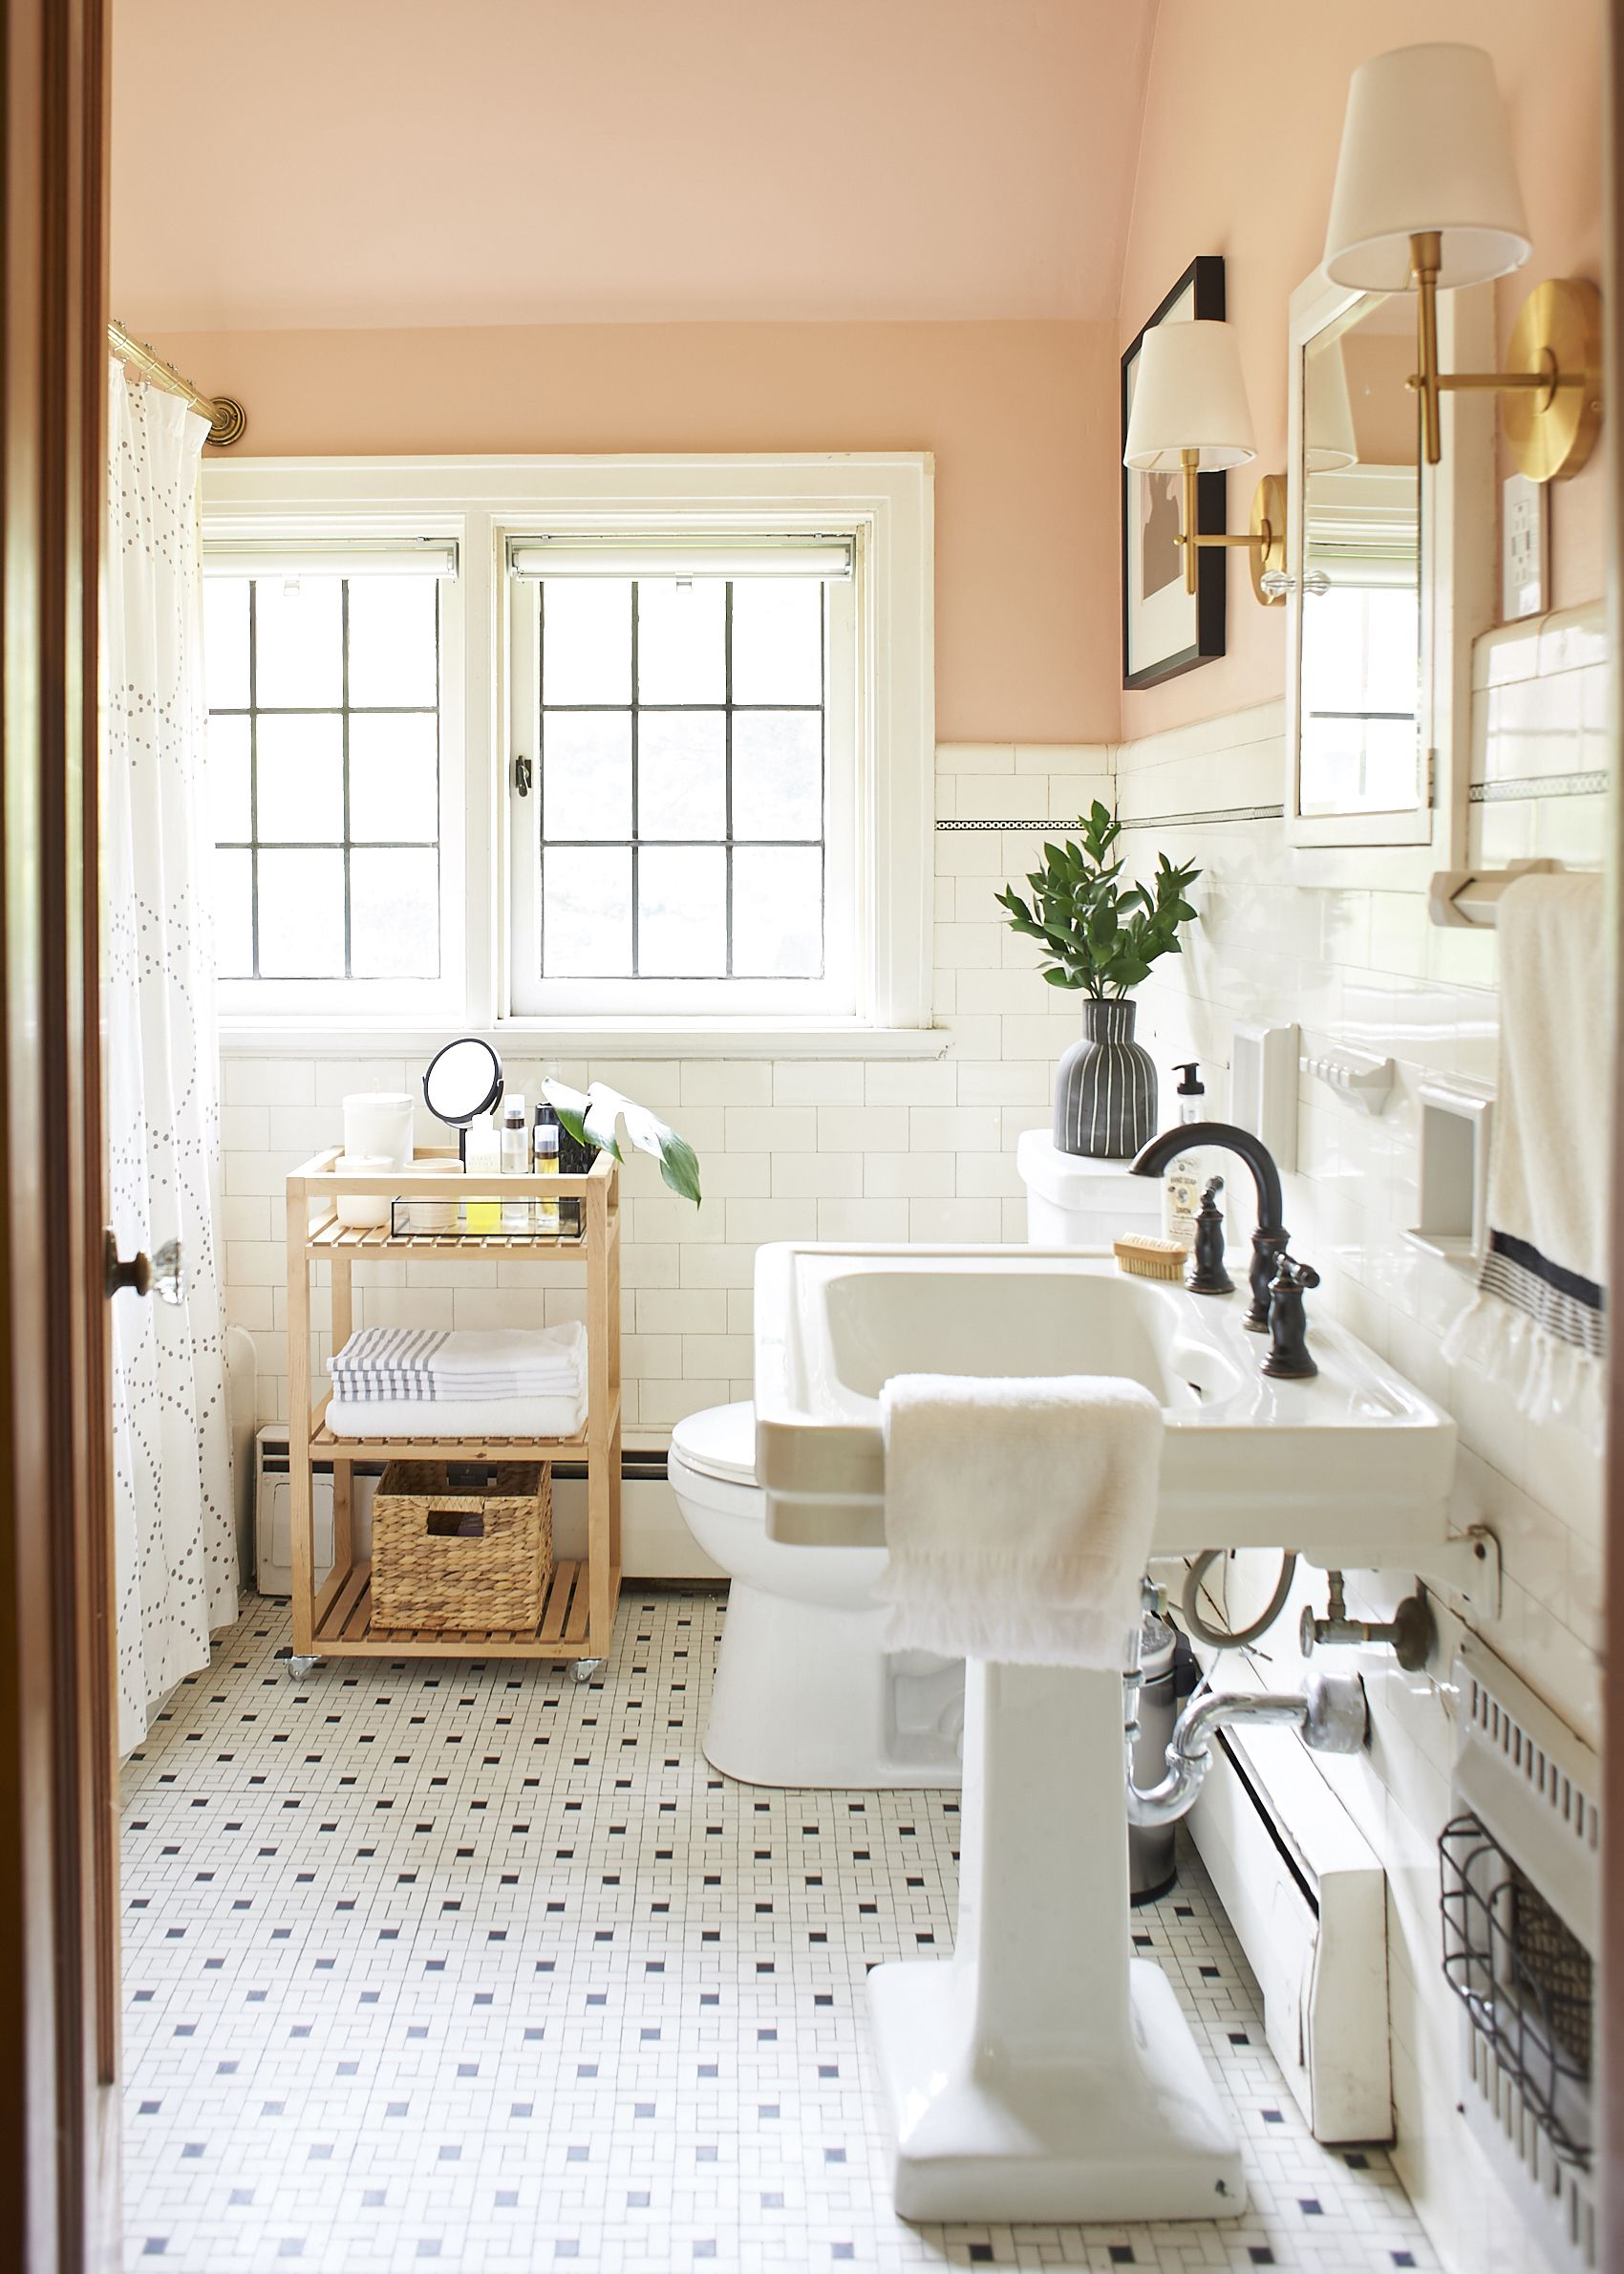 Blush and moody tones in a pittsburgh home for for Townhouse bathroom ideas